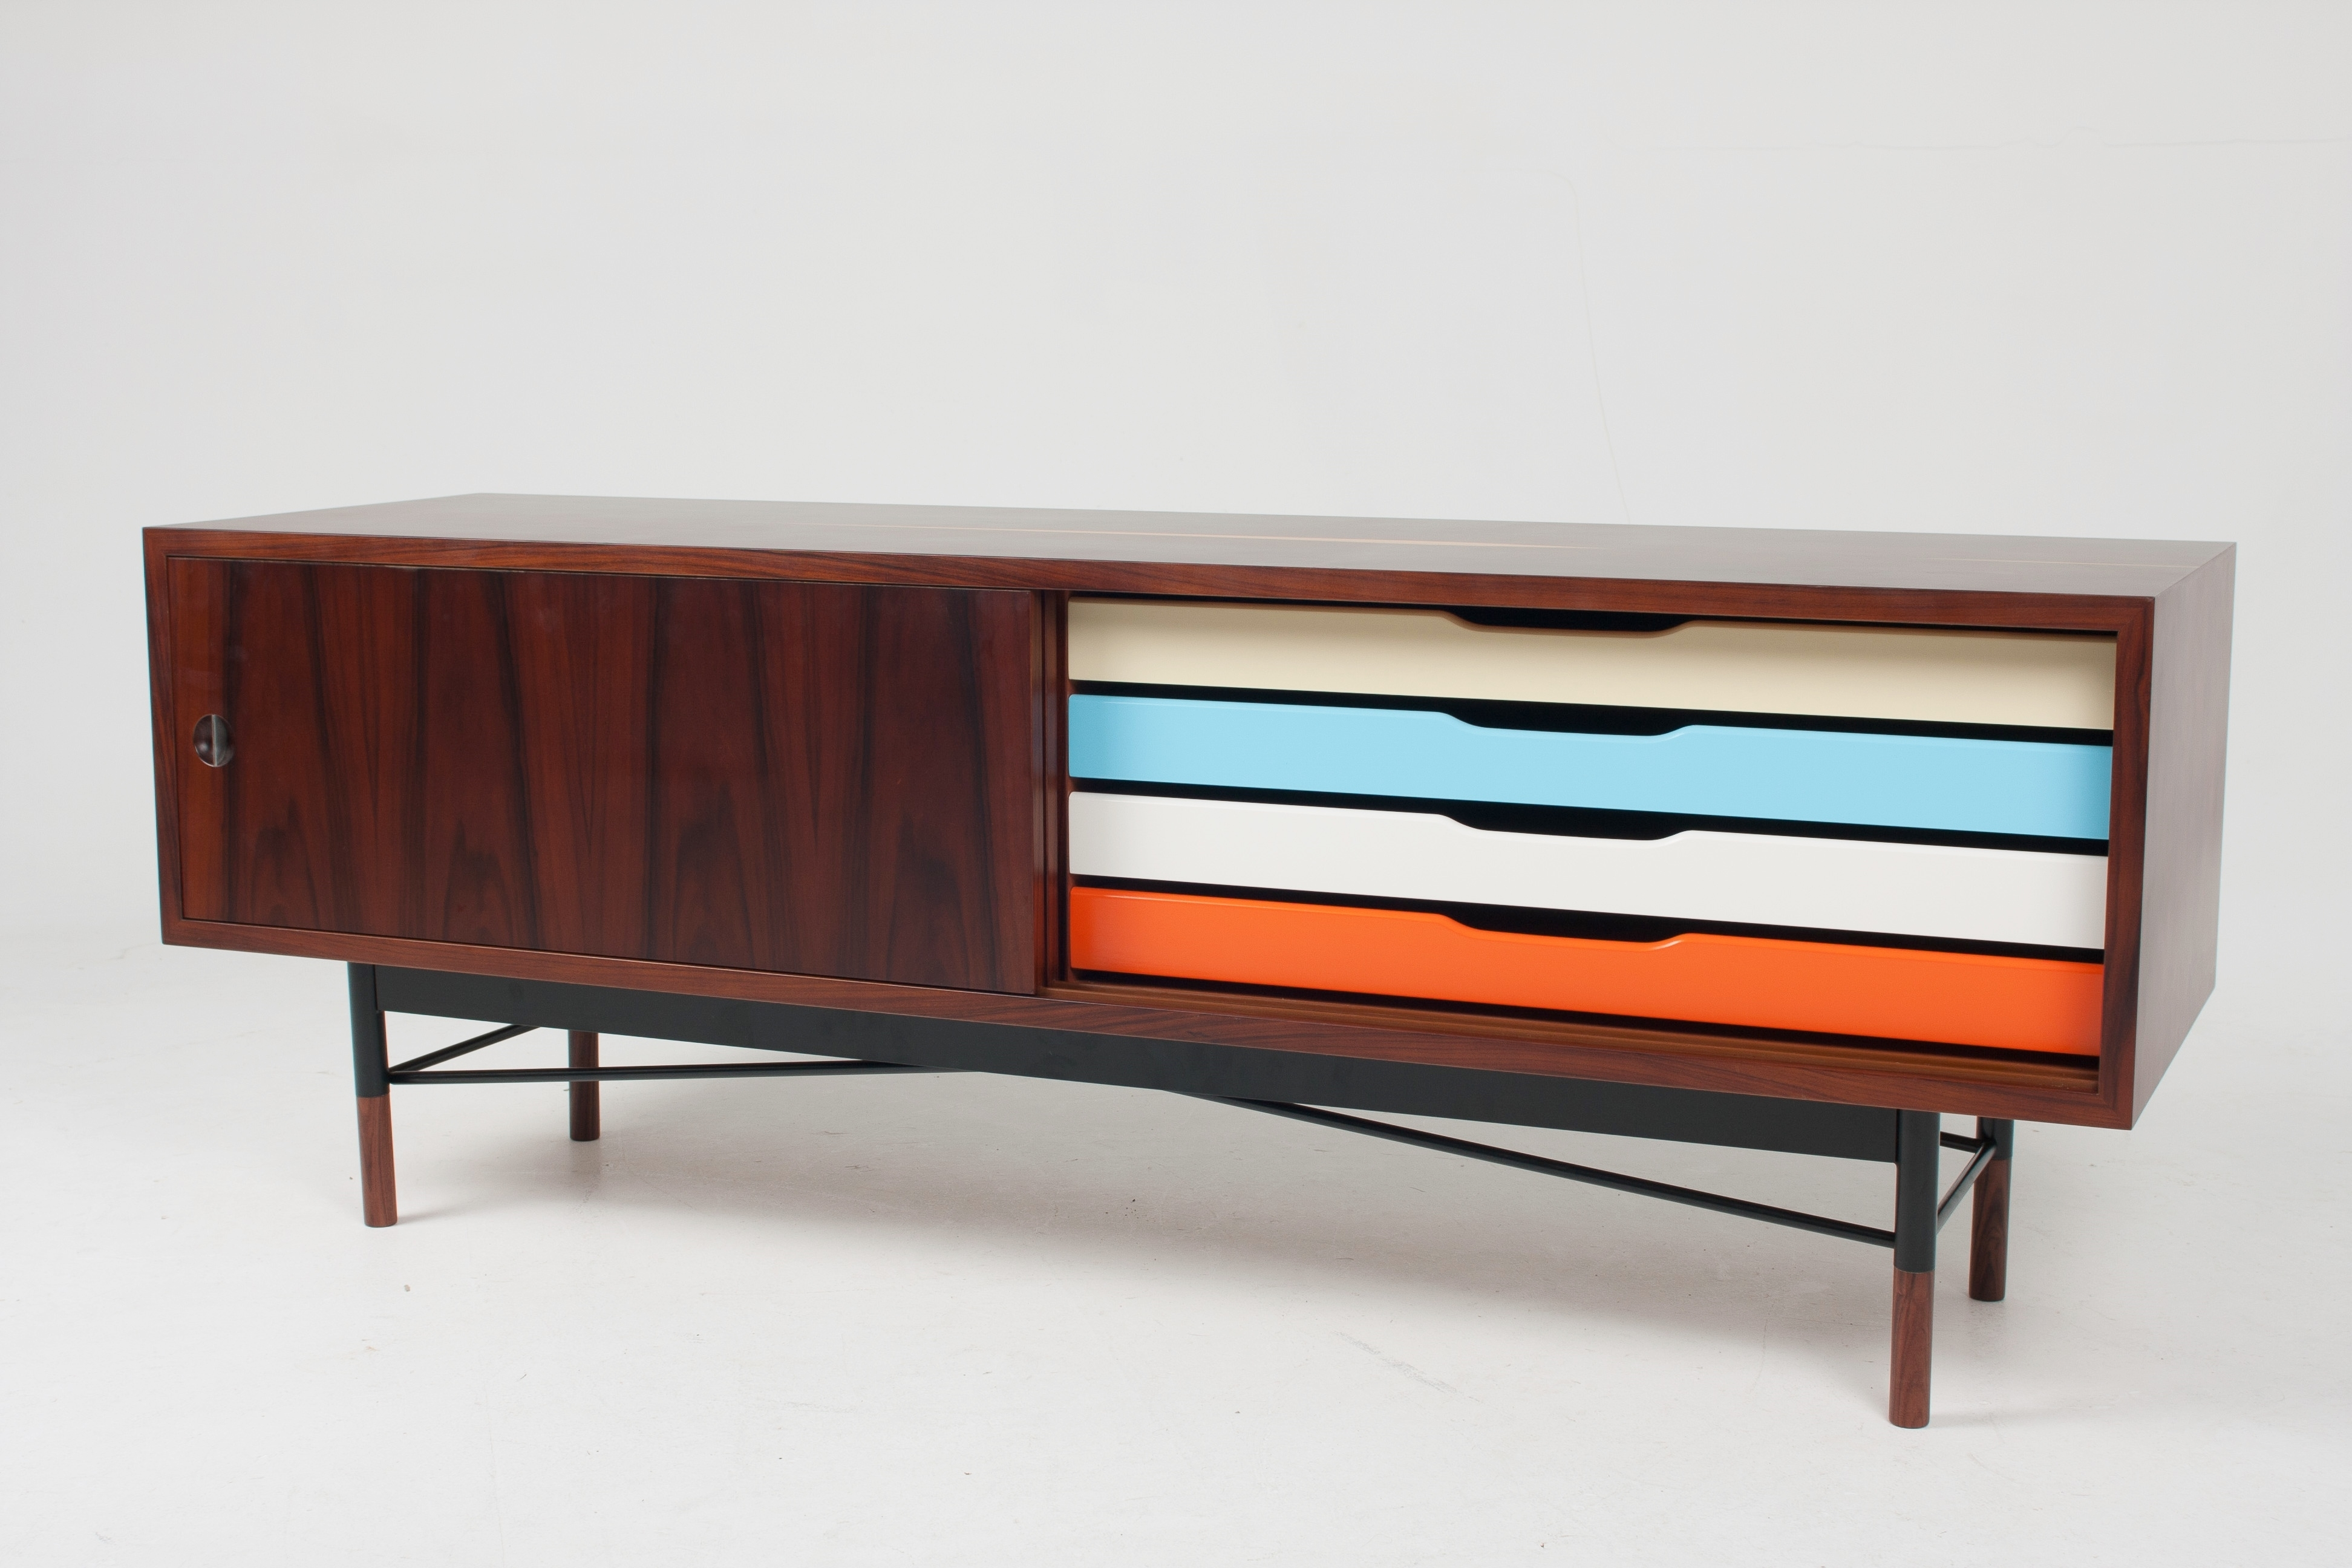 Sideboard Furniture Design Come With Walnut Material And Varnished for Walnut Finish 4-Door Sideboards (Image 23 of 30)